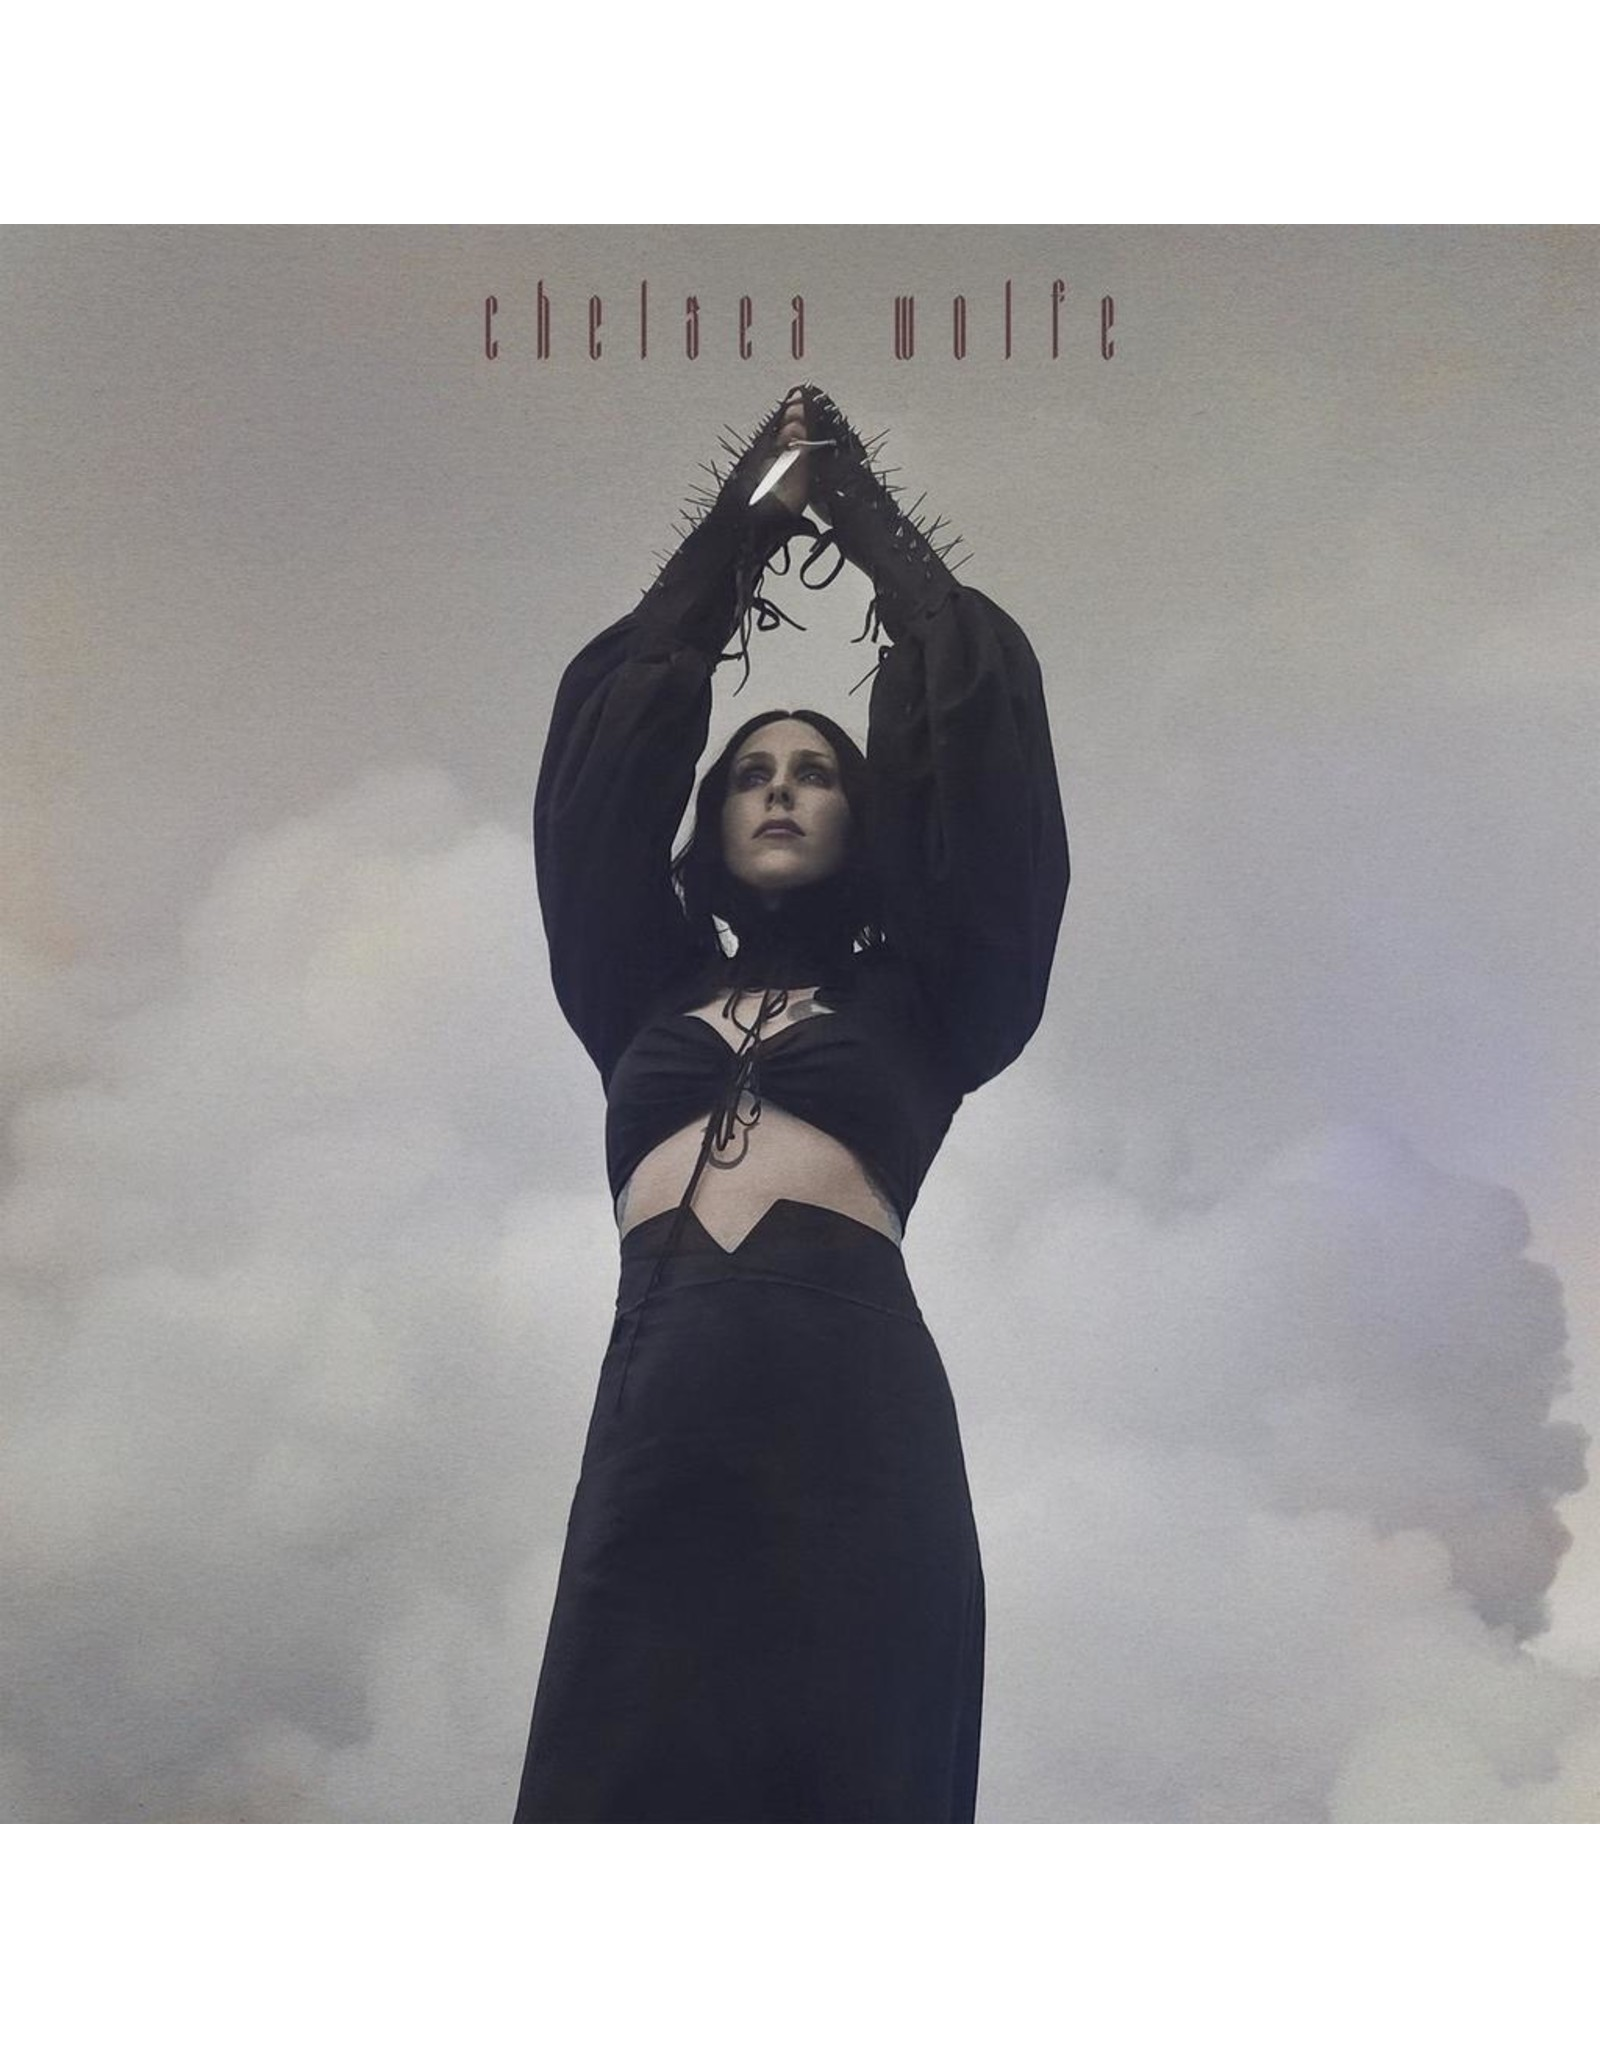 New Vinyl Chelsea Wolfe - The Birth Of Violence LP